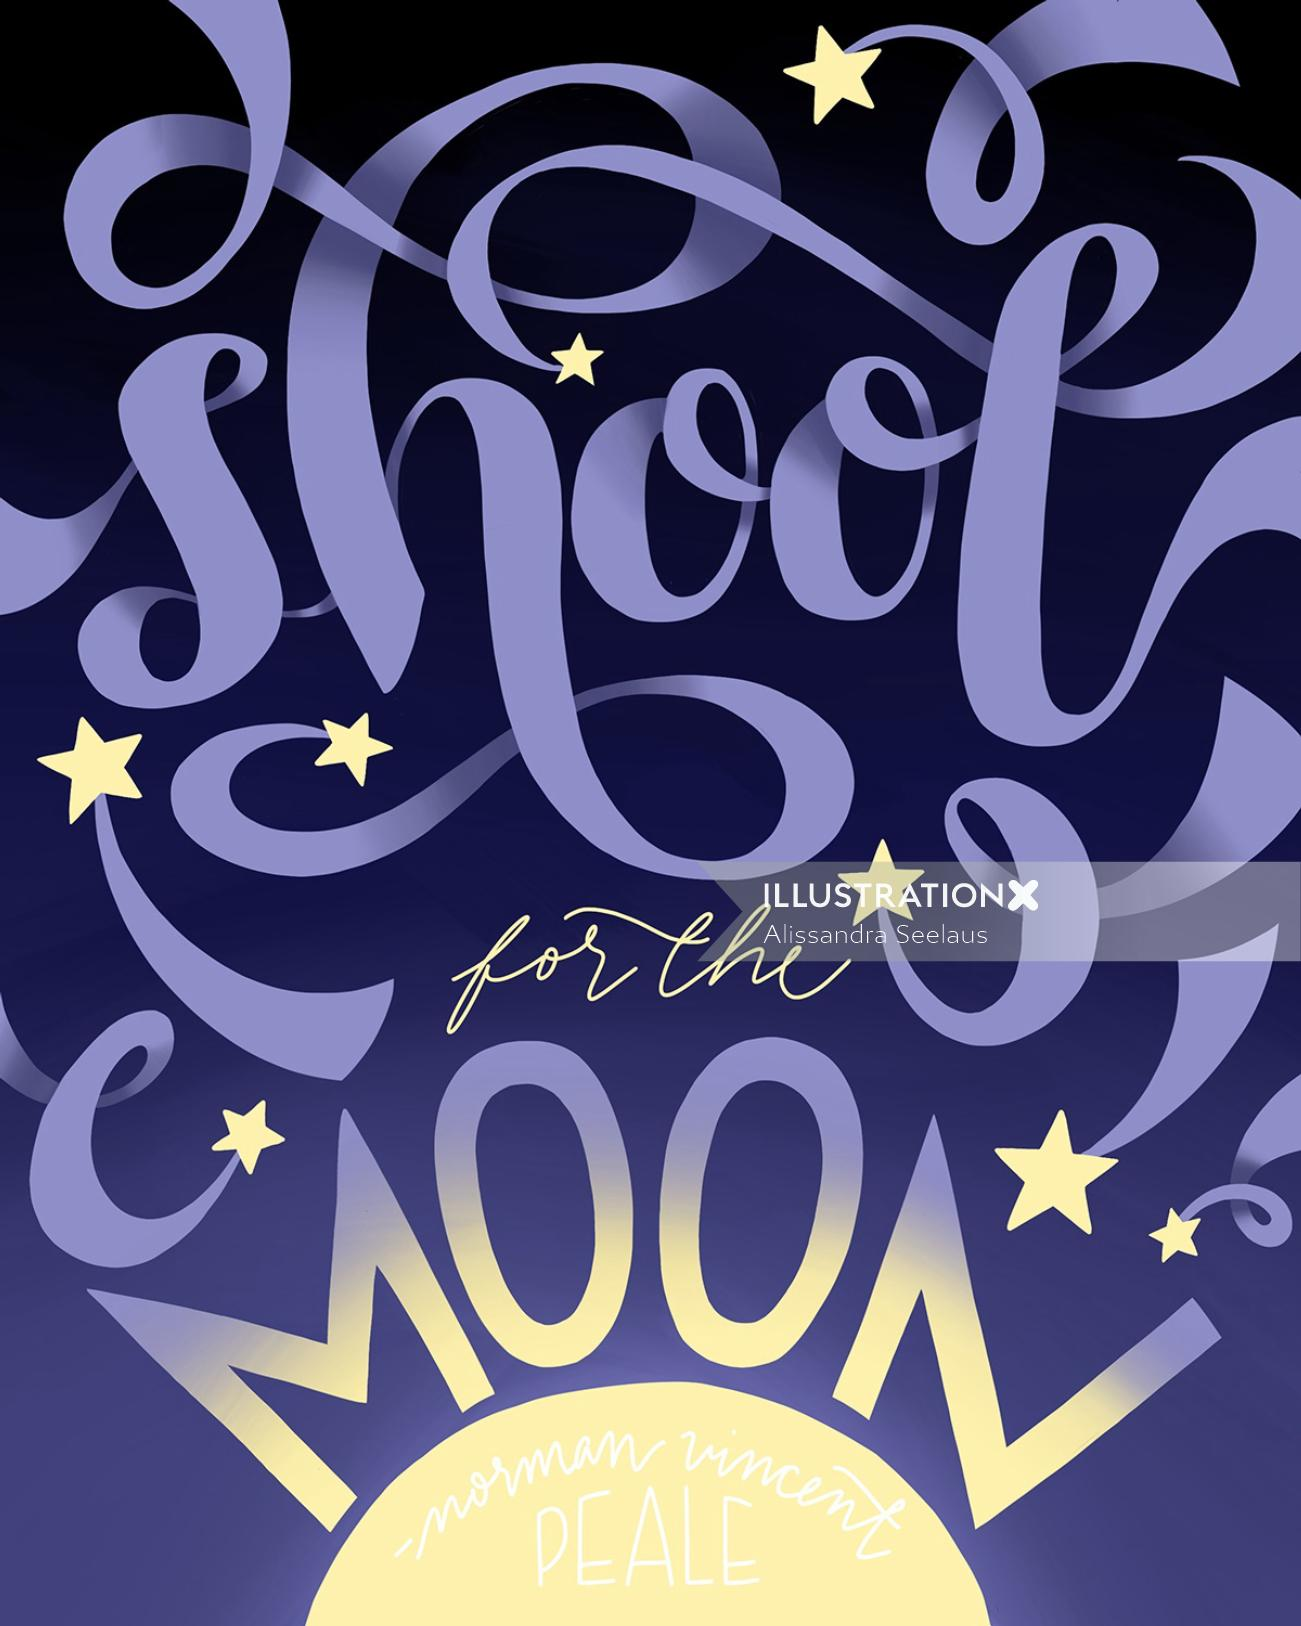 Poster design of shoot for the moon